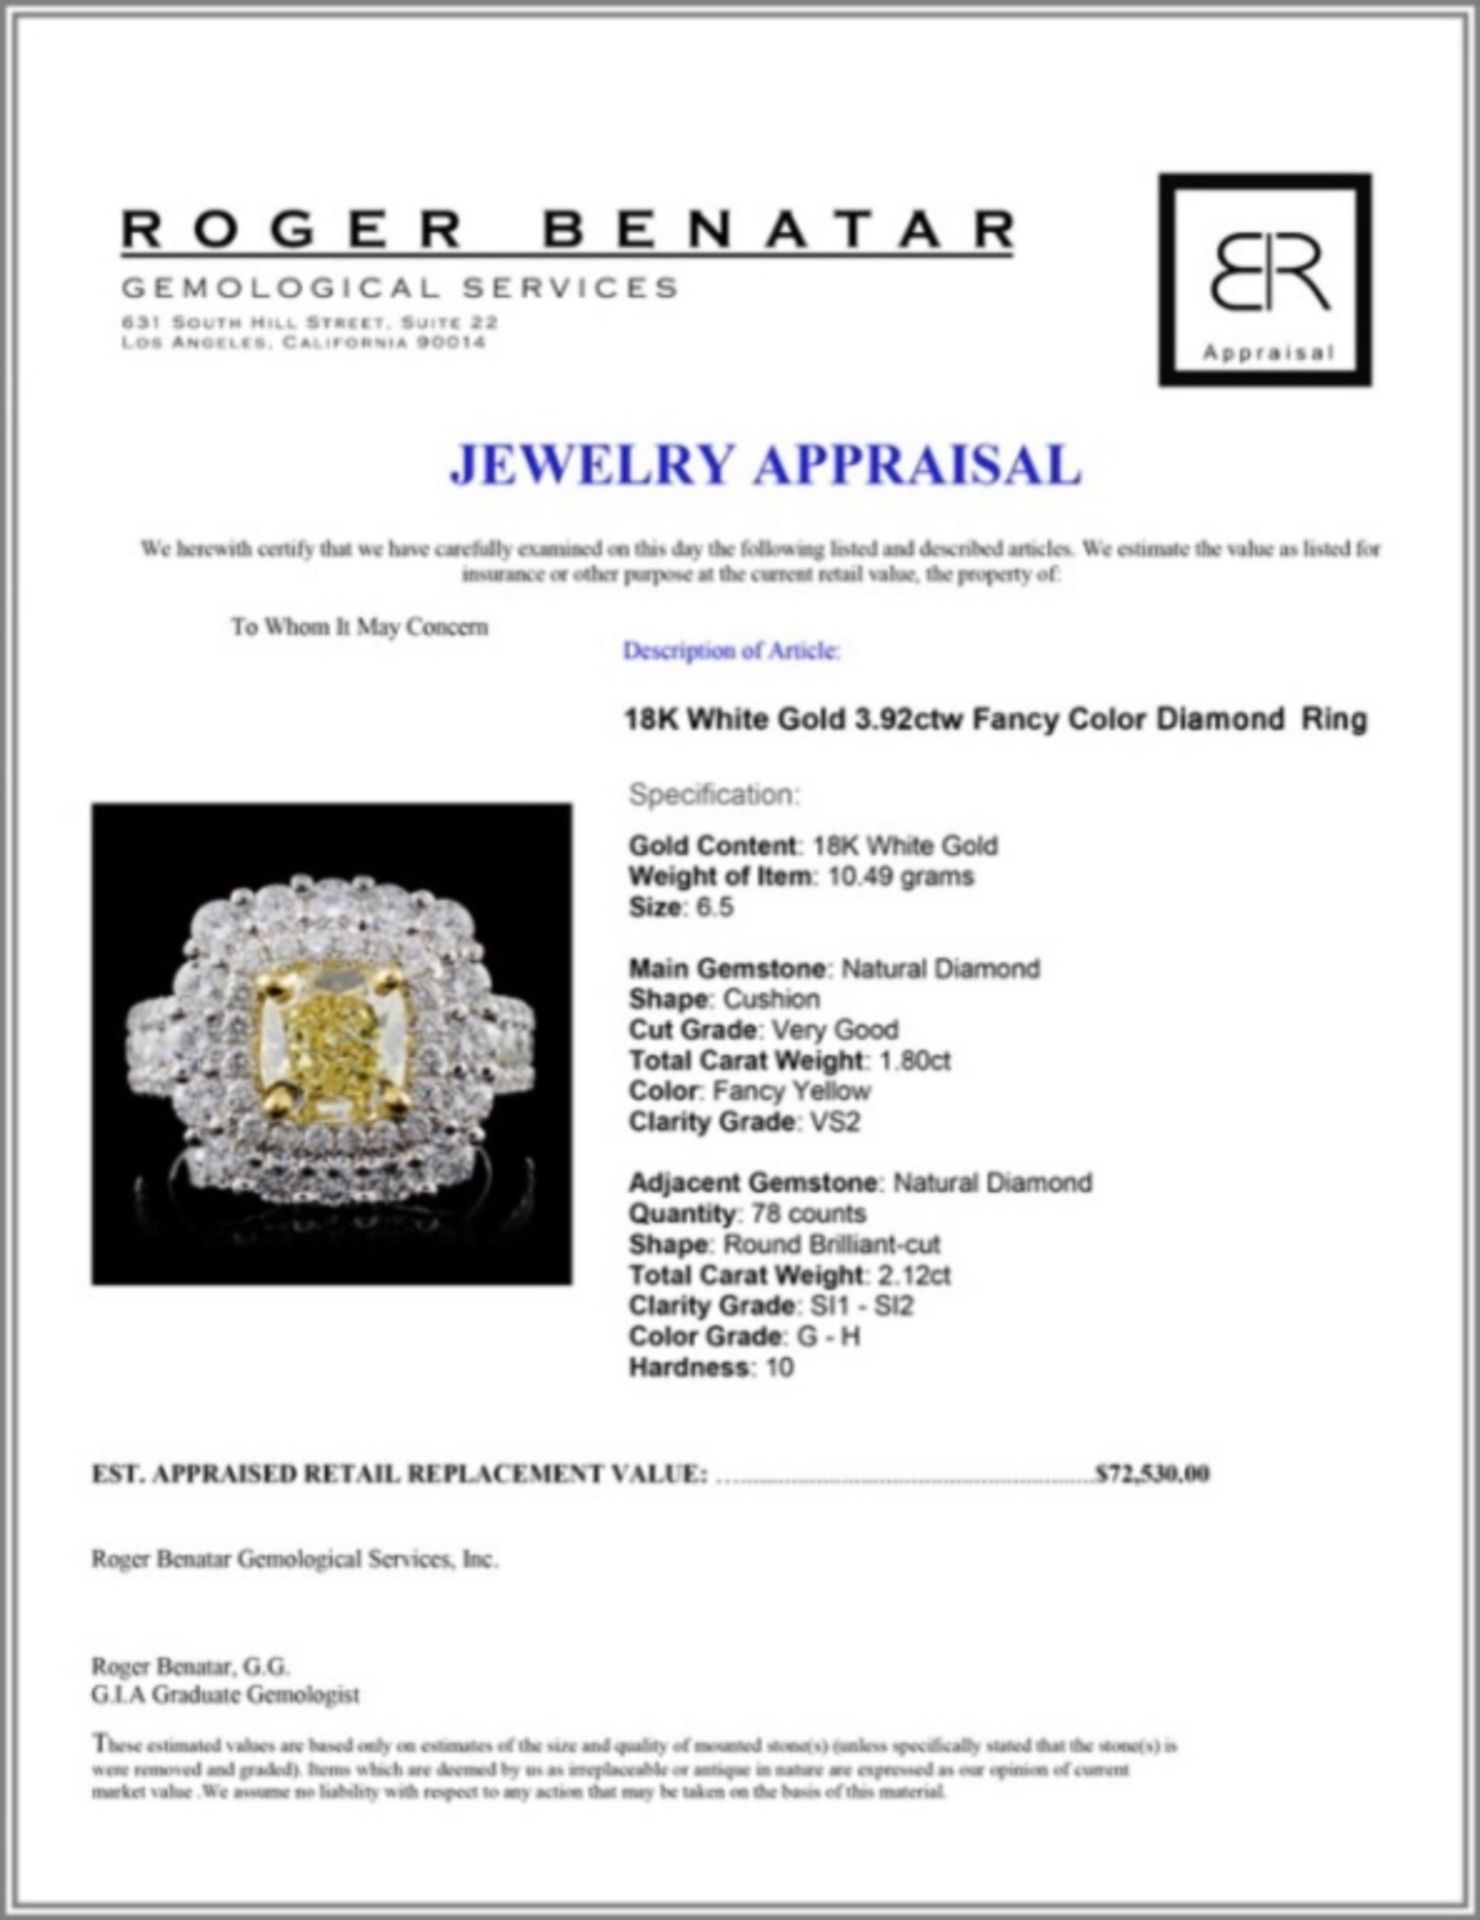 18K White Gold 3.92ctw Fancy Color Diamond Ring - Image 4 of 4